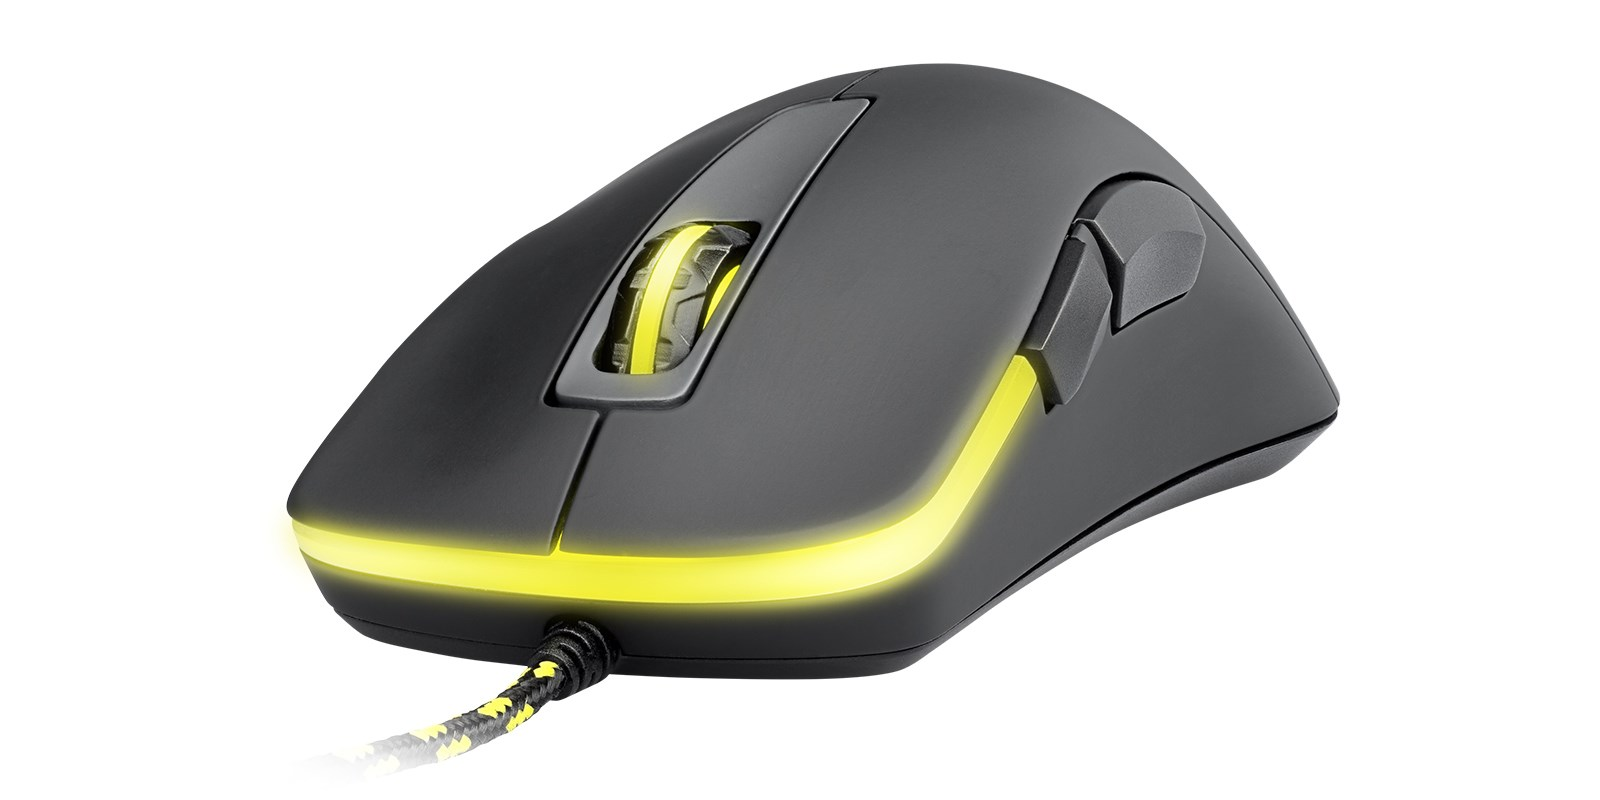 Xtrfy M1 Wired USB Optical Gaming Mouse - Ninjas in Pyjamas Edition ...